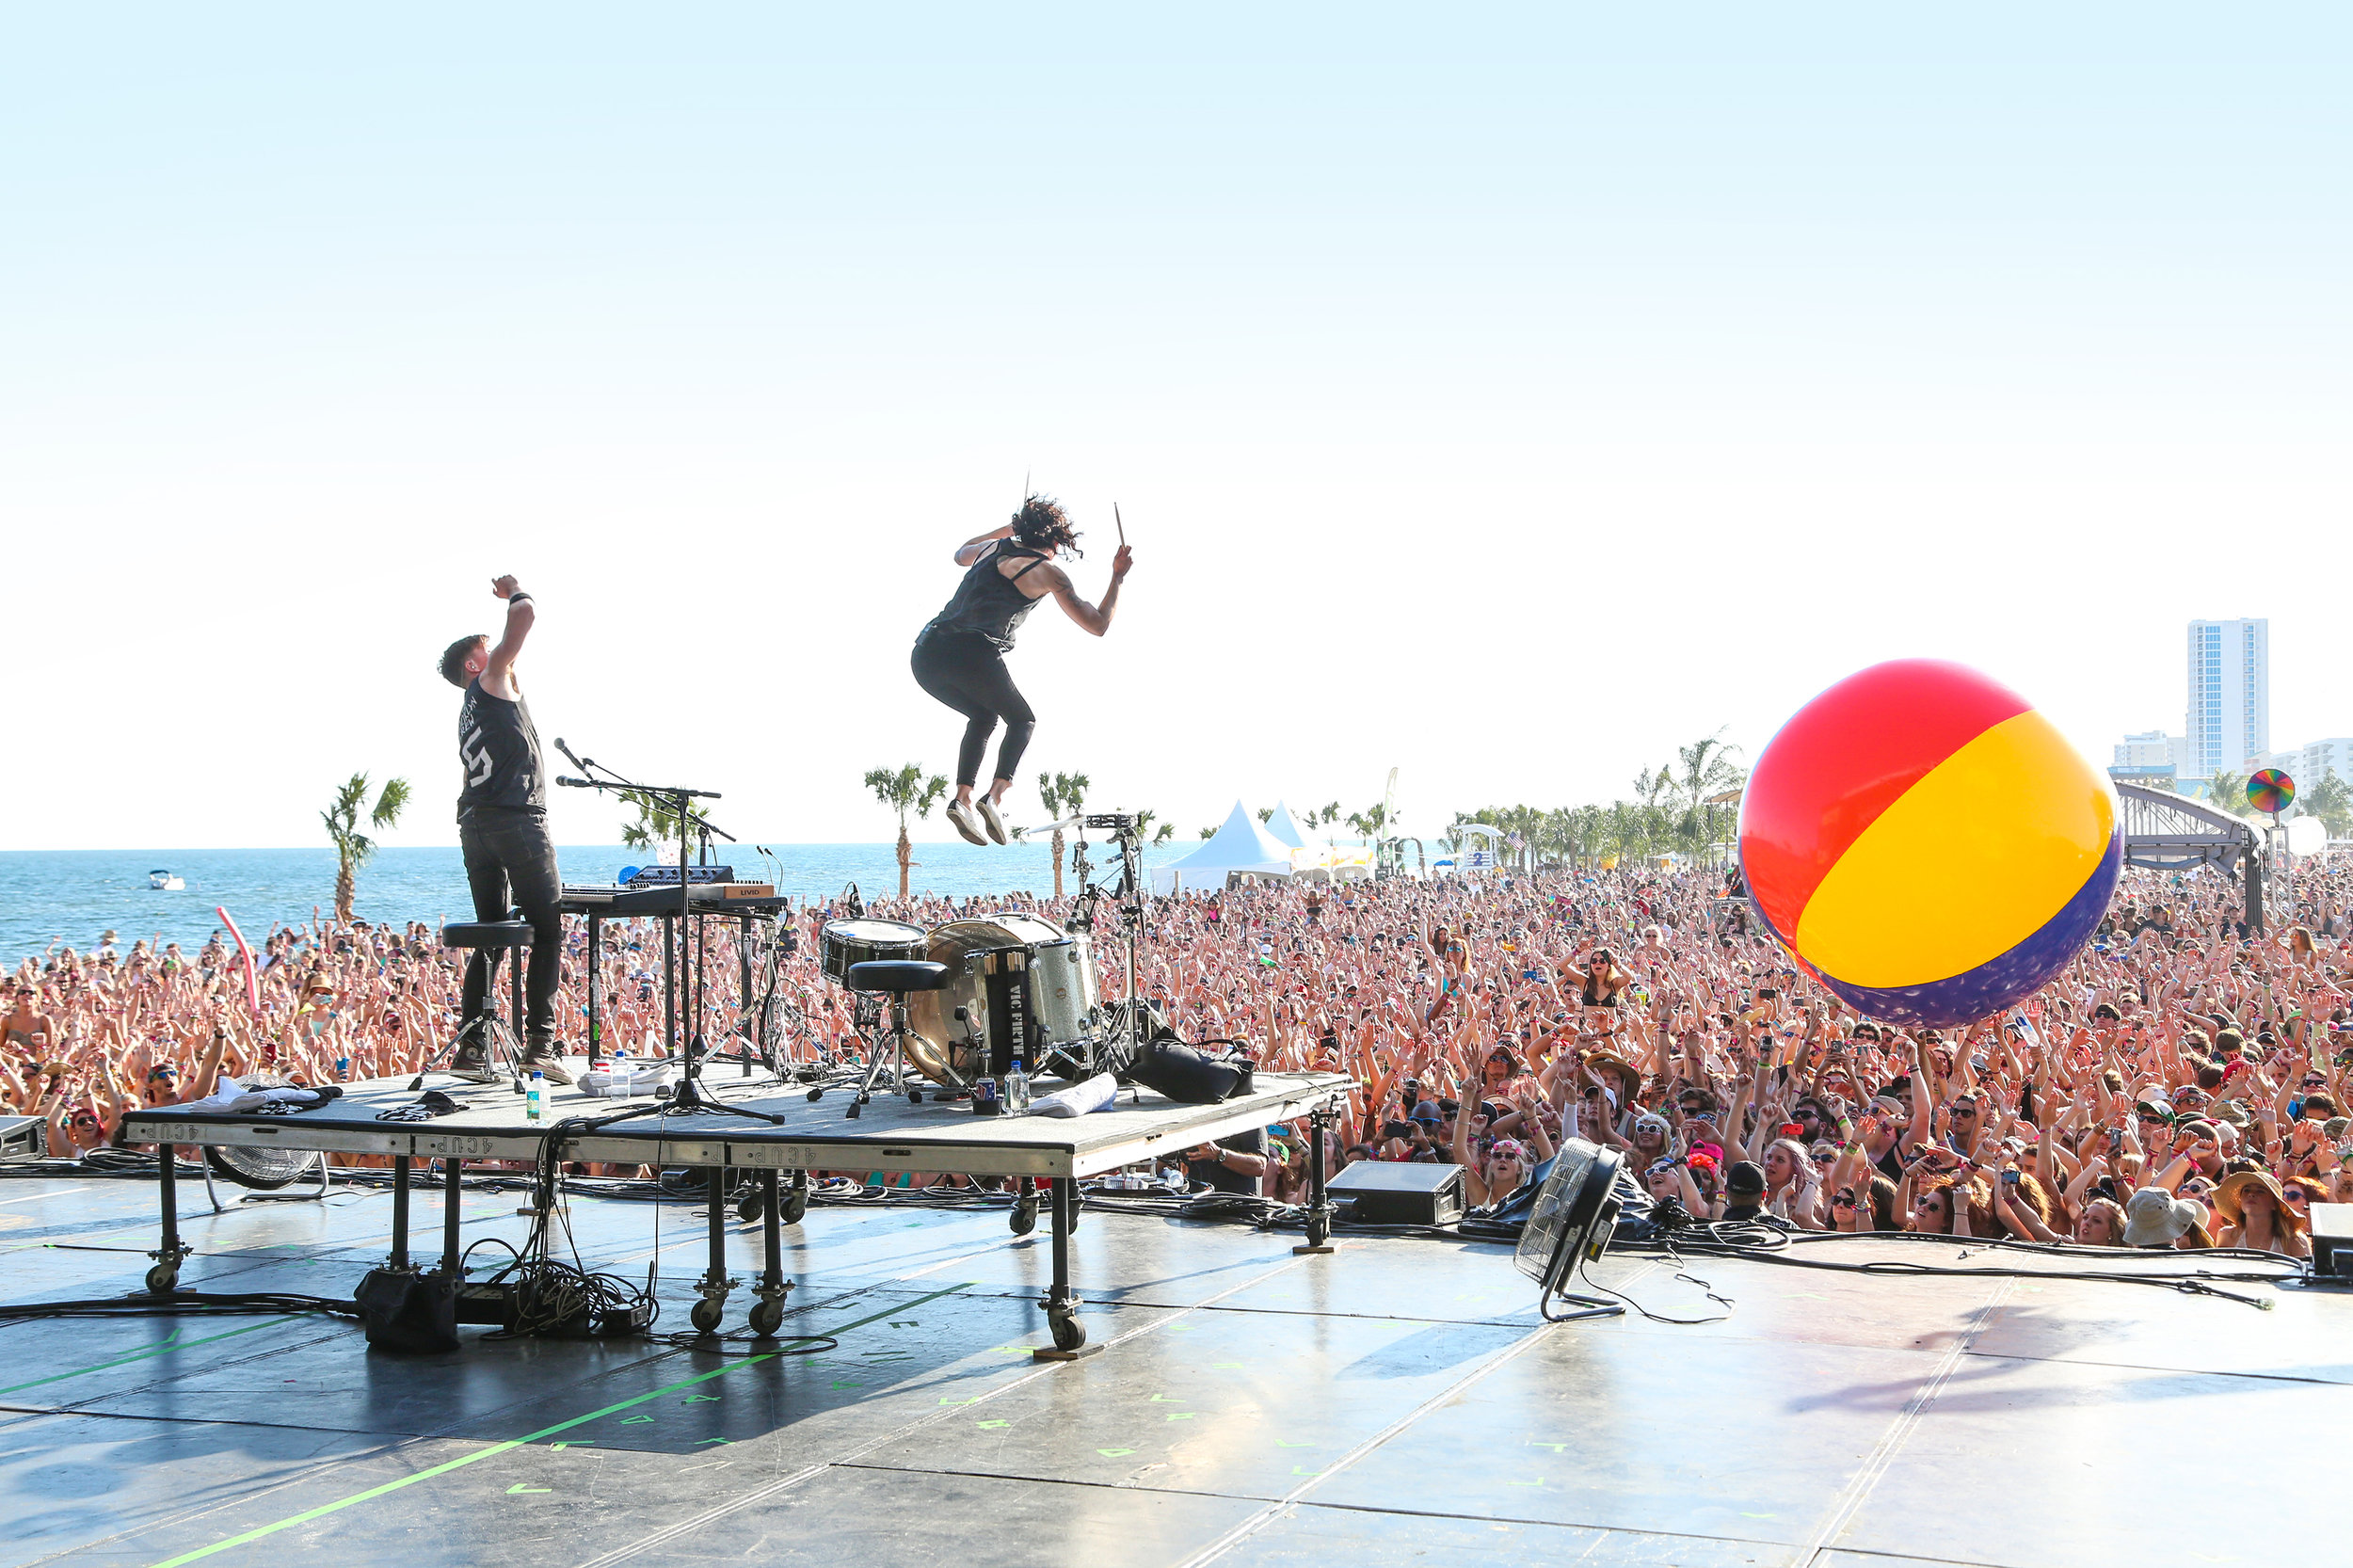 Experience Hangout Music Fest like a VIP